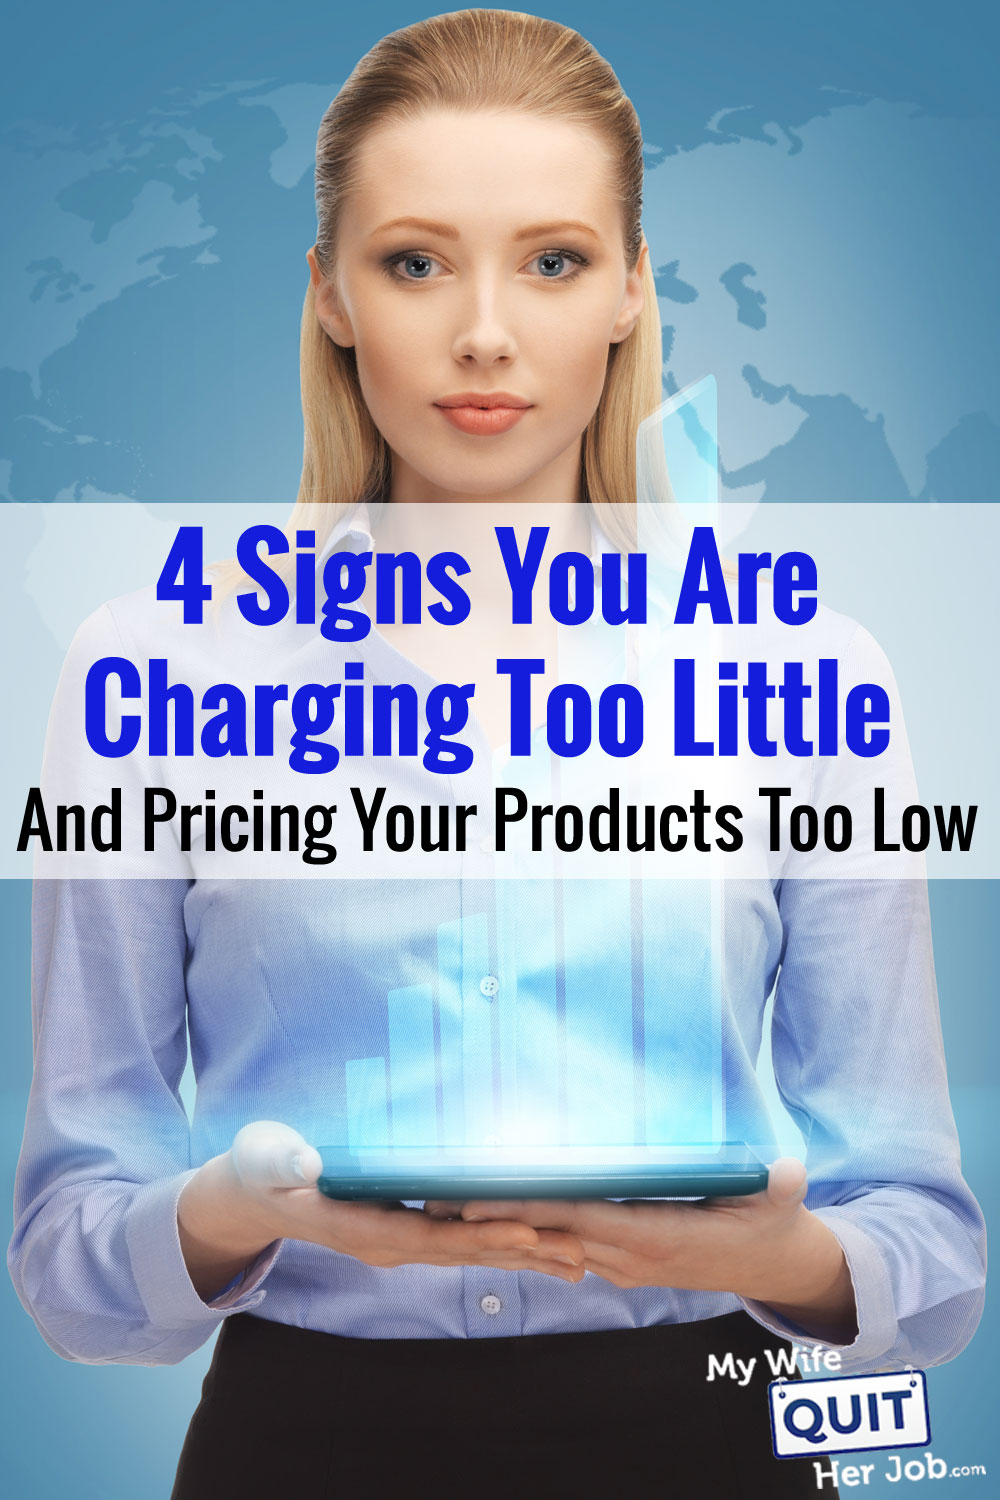 How To Price Your Product And Are You Charging Too Little?